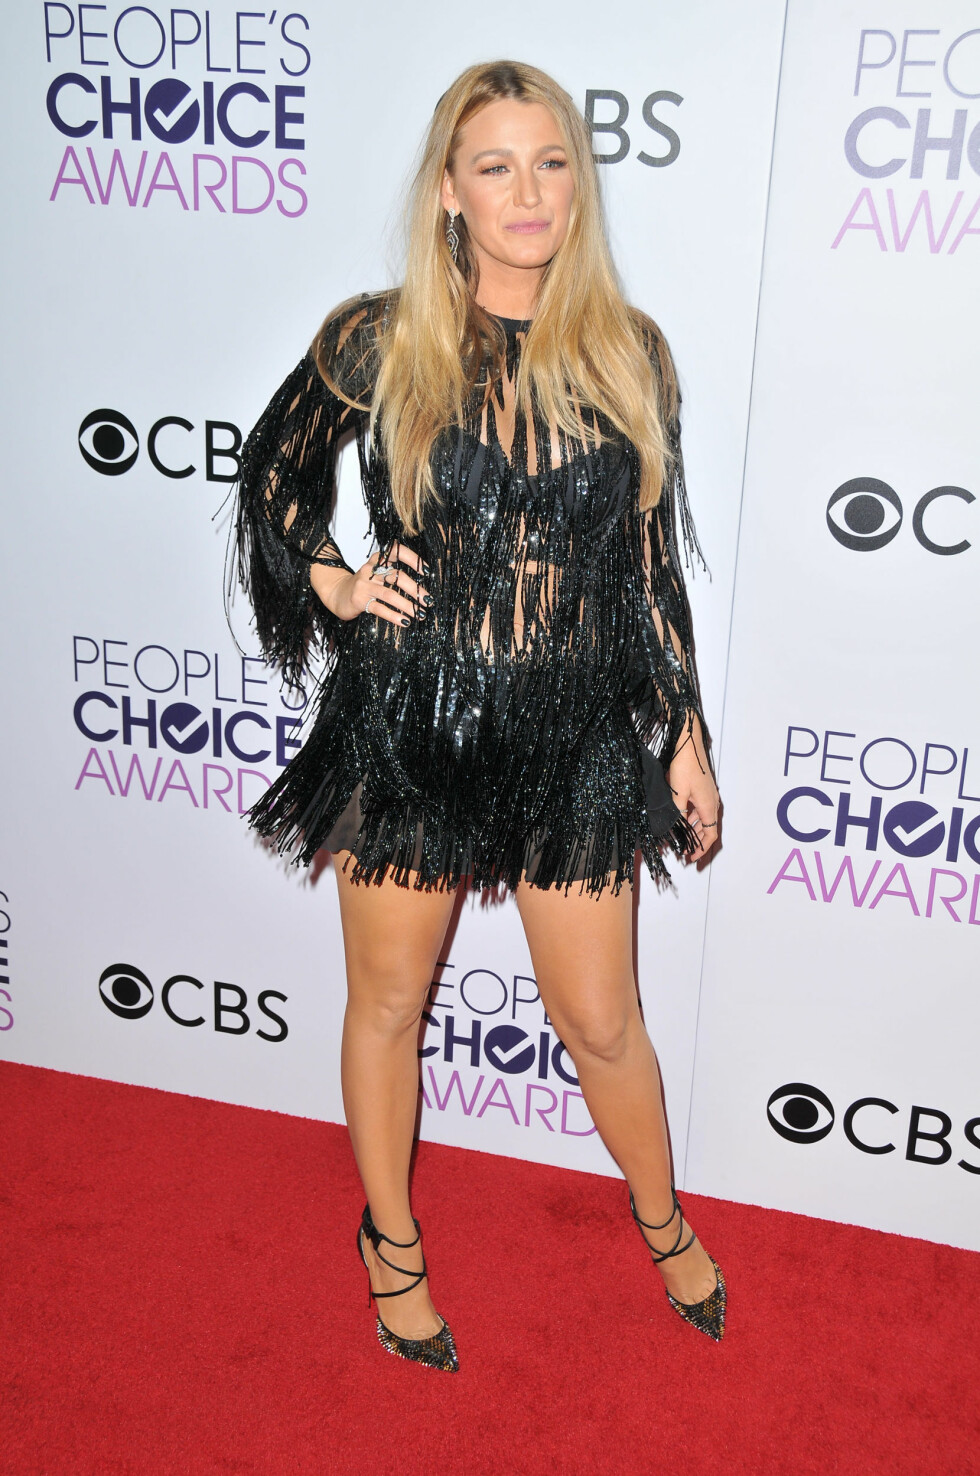 PEOPLE'S CHOICE AWARDS: Blake Lively. Foto: SipaUSA